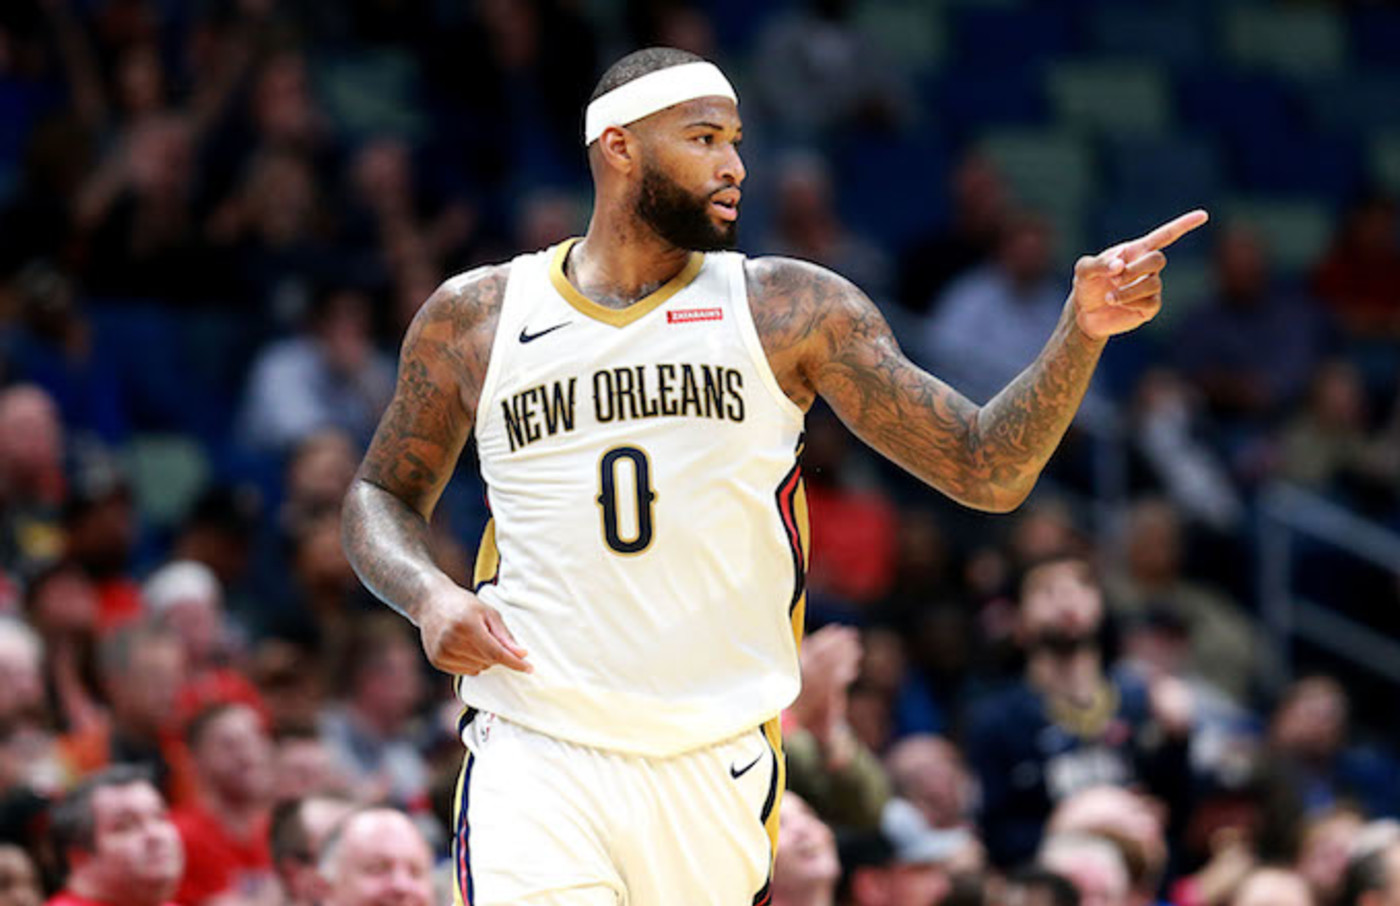 DeMarcus Cousins of the Pelicans